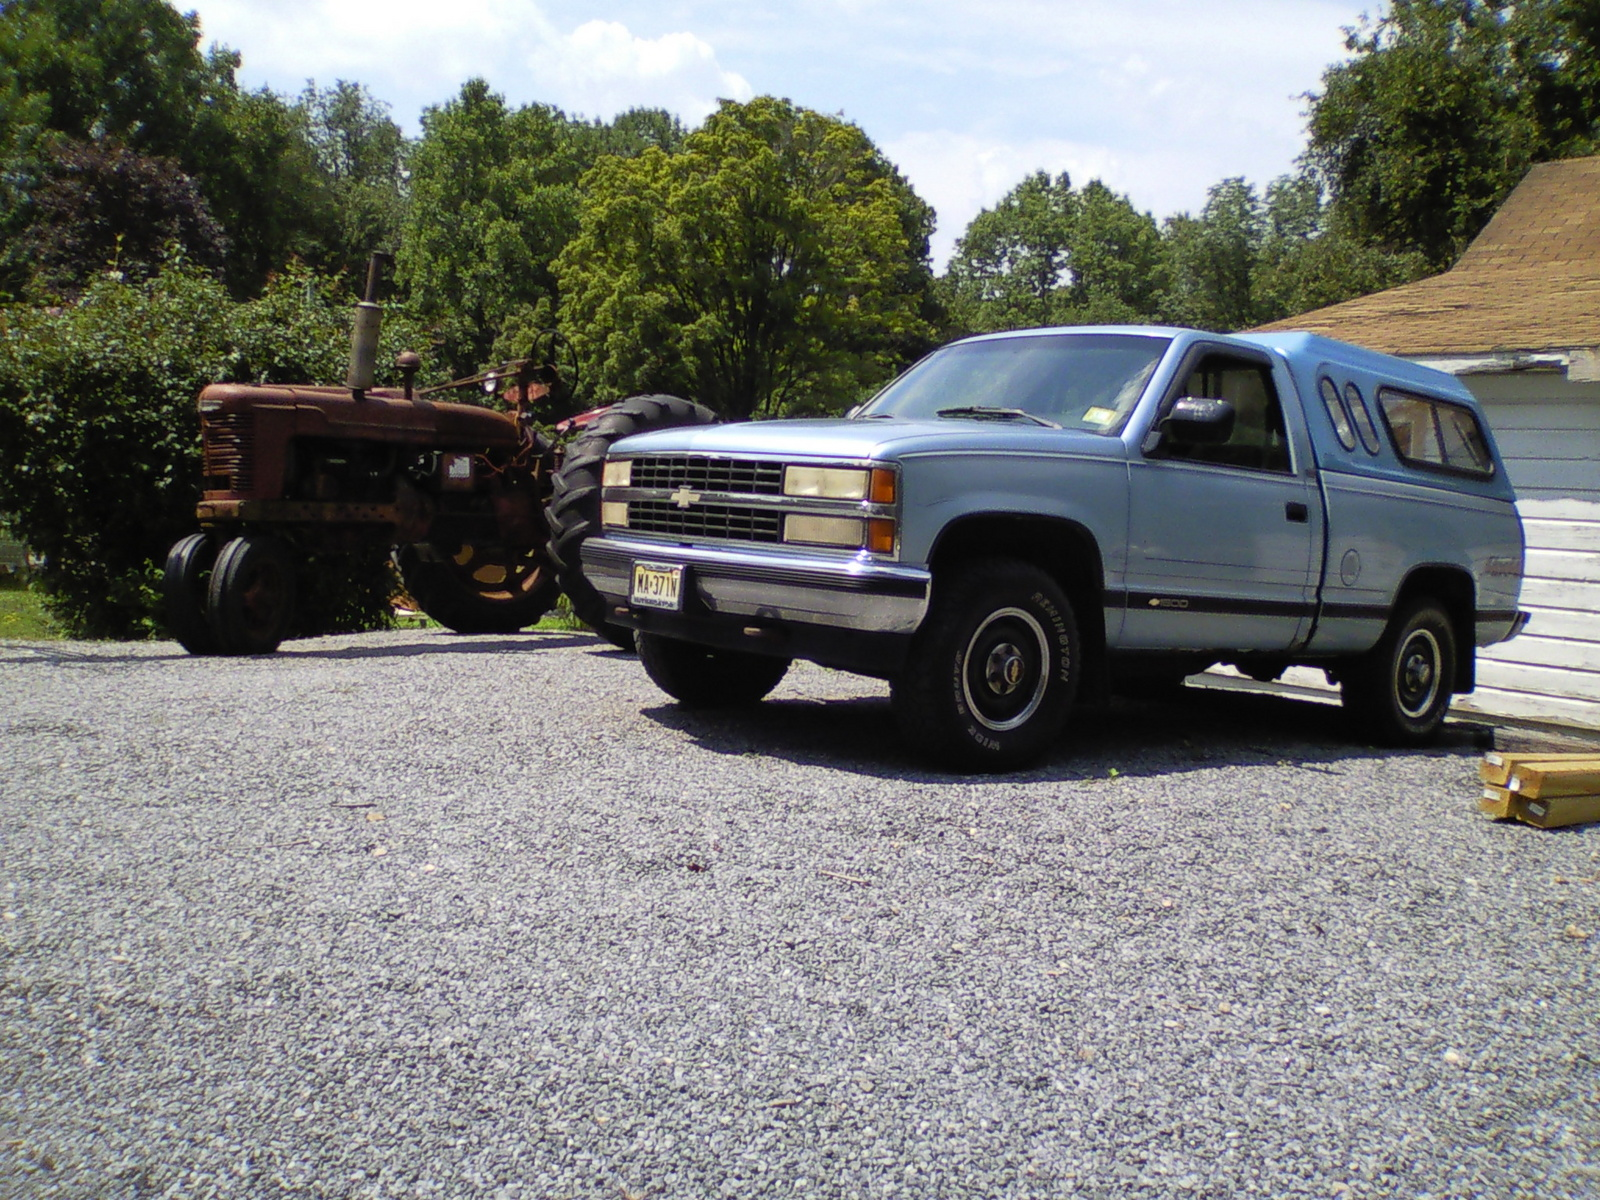 Location Tcc Solenoid Connector 99 Chevy Cavalier Z24 Convertible 2 4l 74377 further 1cox3 Gmc Sierra 1500 Need Torque Specs Front Axle Nut as well Video Junkyard 5 3 Liter Ls Swap Into A 88 98 Truck Done Right additionally 1996 Chevrolet Silverado 1500 Regular Cab moreover Fabtech 6 Suspension Lift Kit Perf Sys W Perf Shks 88 98 Gm K1500 Pu 4wd 92 99 Sub 2dr Blzr 4dr Tahoe 4wd. on 1991 chevrolet k1500